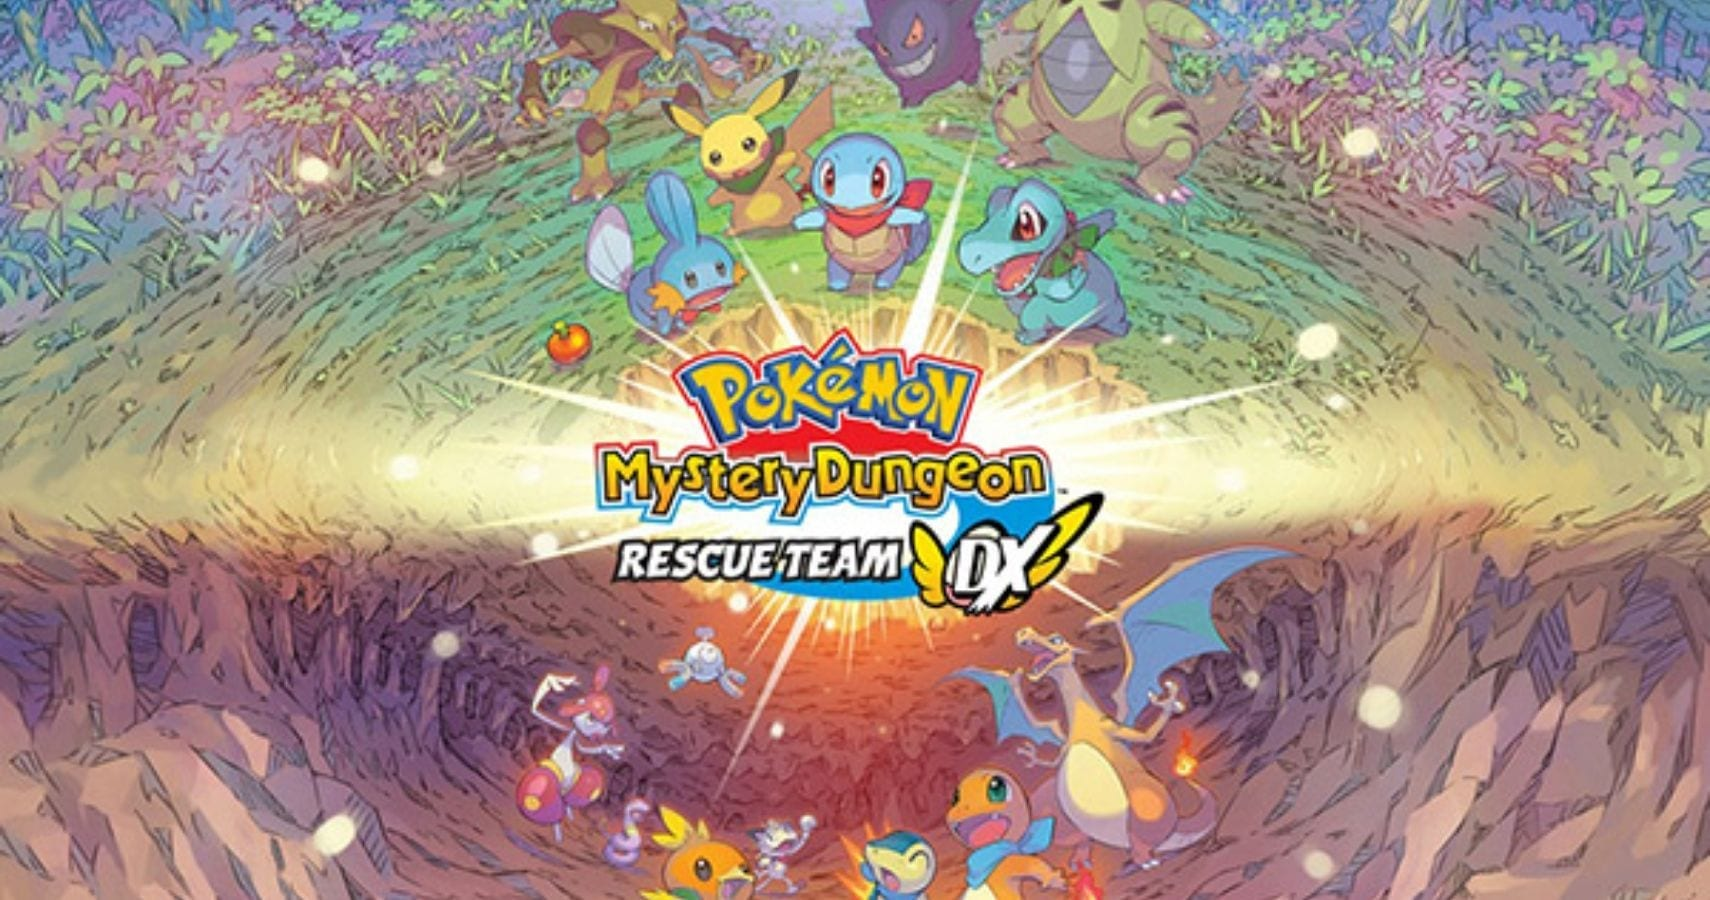 Promotional Image of Pokemon Mystery Dungeon: Rescue Team DX